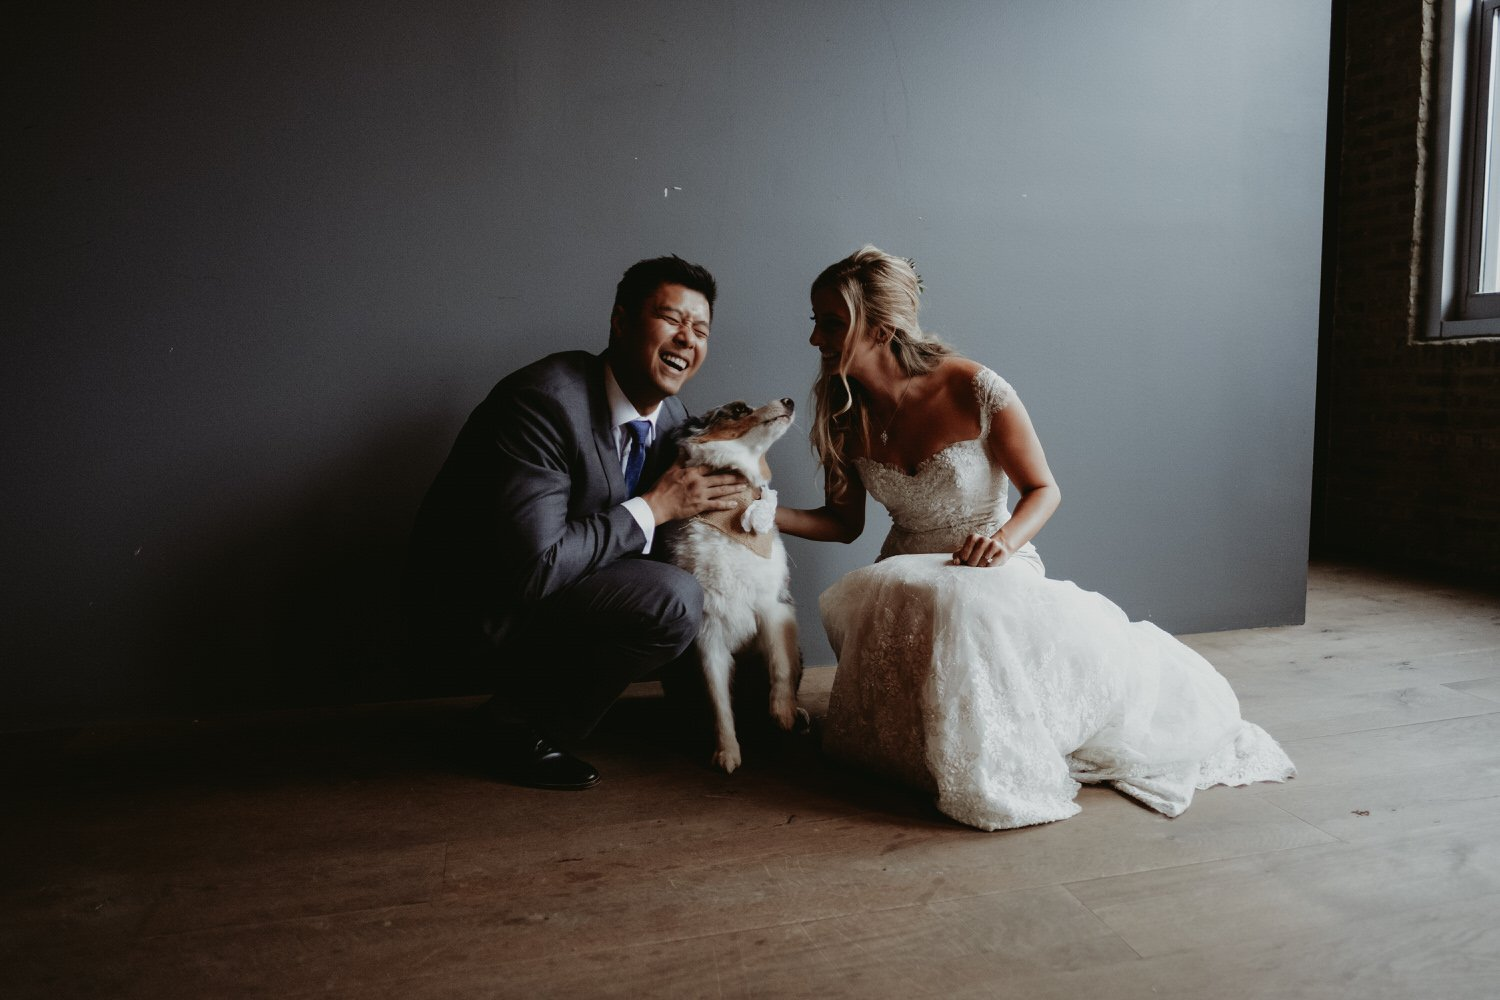 architectural artifacts Chicago wedding photography. Bride and groom with cute dog.